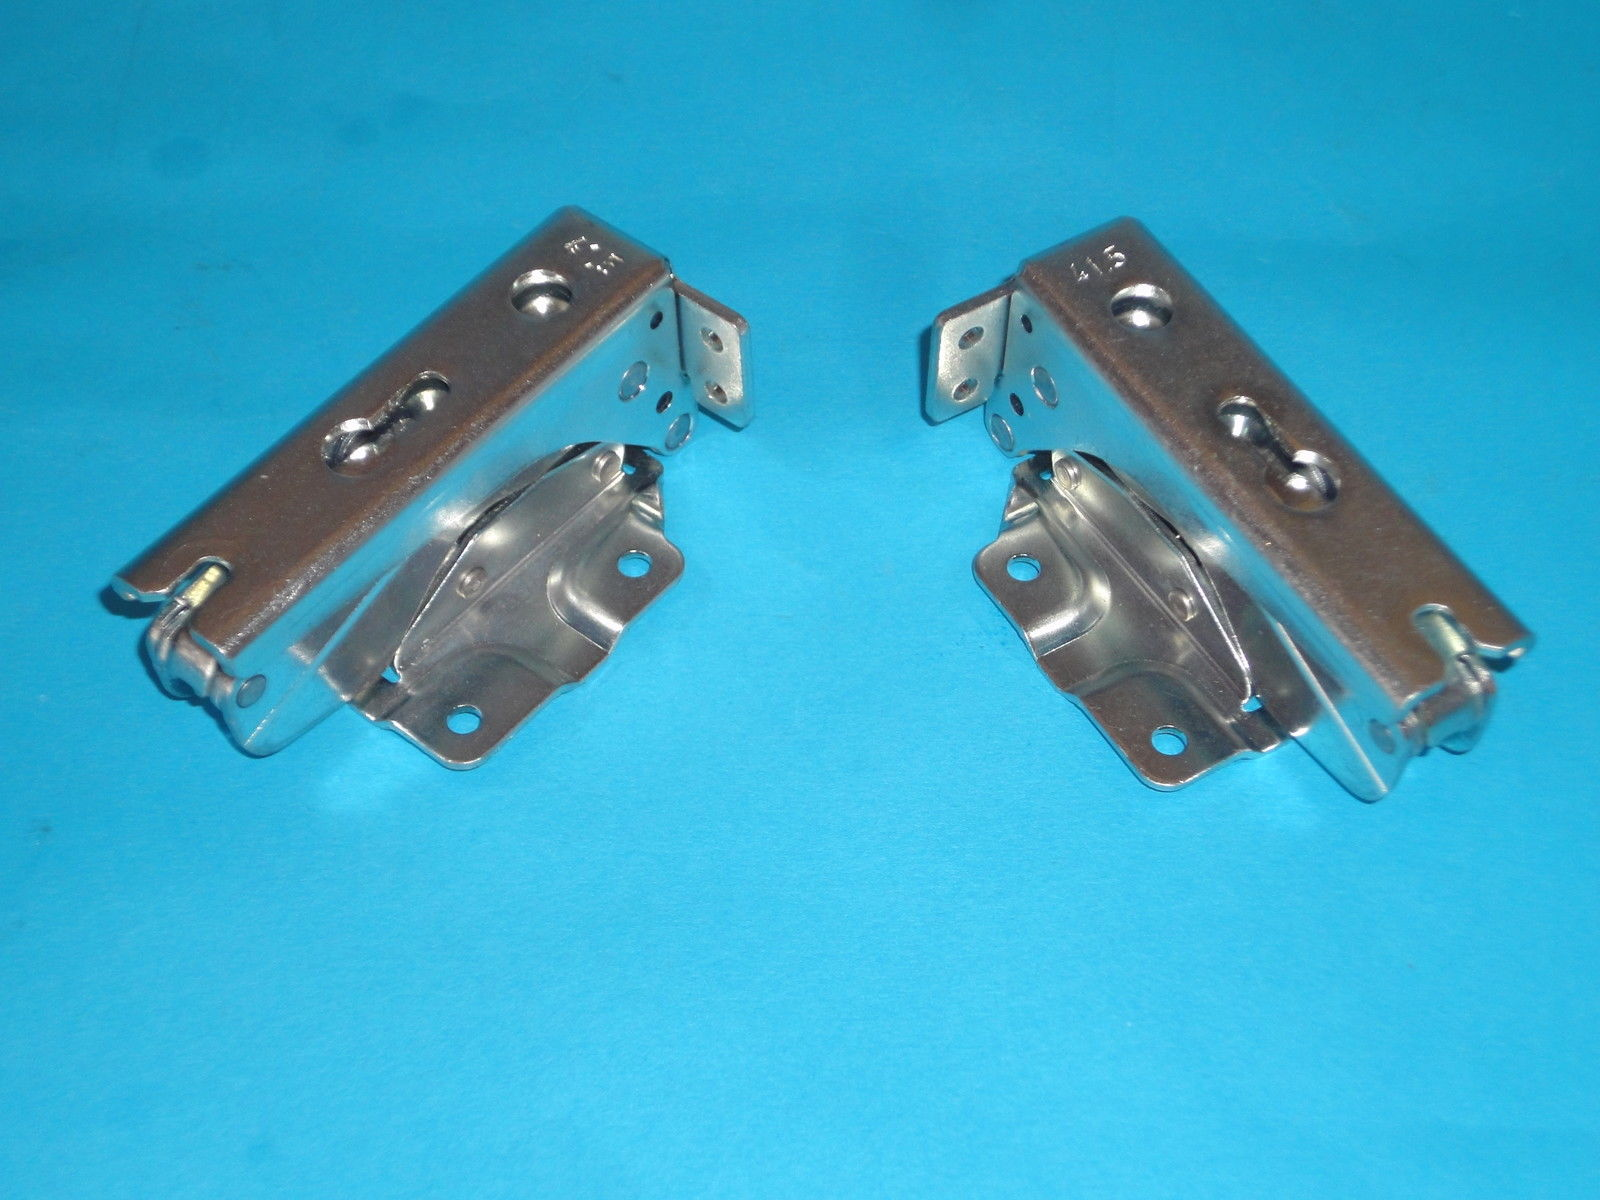 PRIMA INTEGRATED FRIDGE HINGES PAIR LPR110/111 LPR150 LPR112 LPR